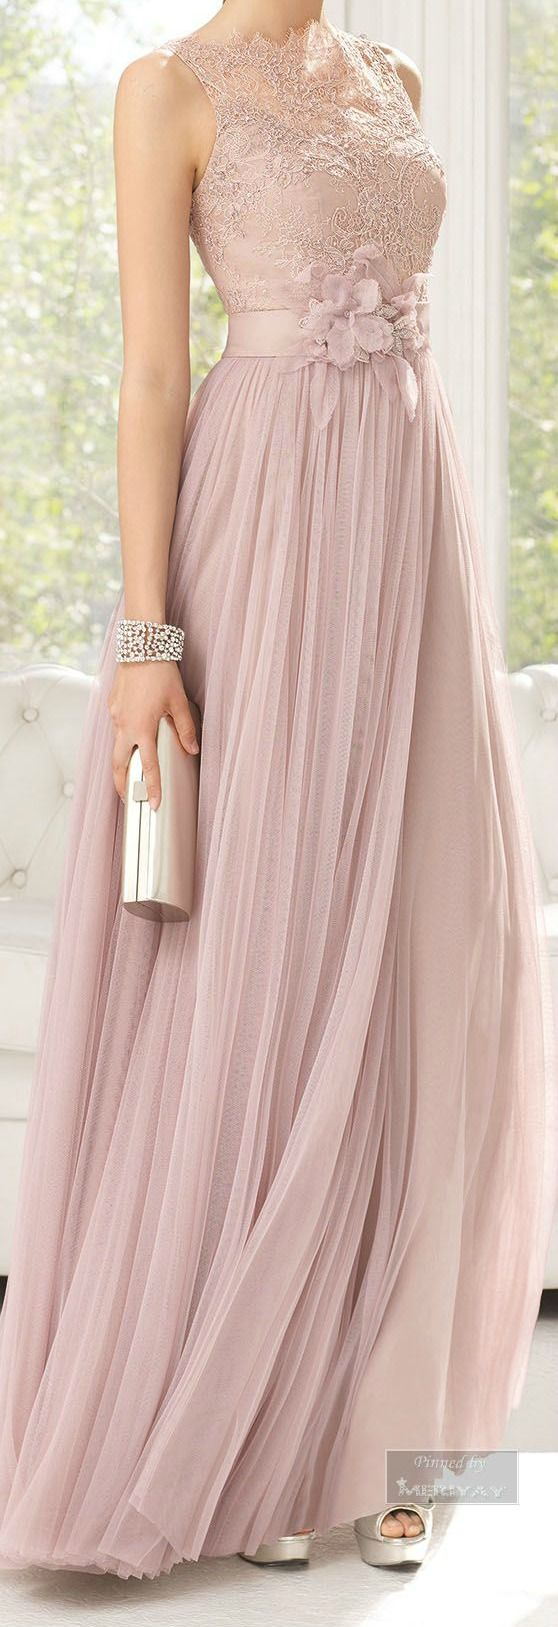 Romancing the gown praveen pinterest romance gowns and google